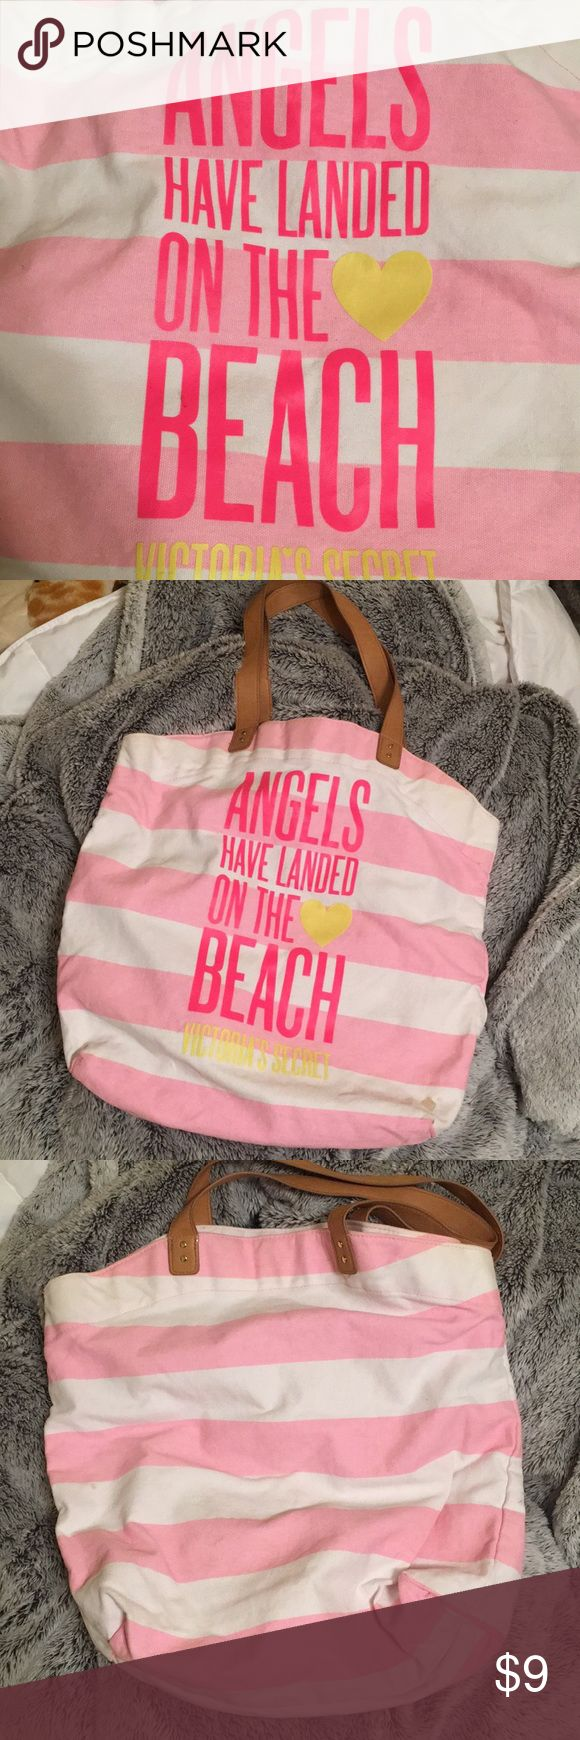 VS Beach bag! 🐠🌴🌸 Good condition! Very roomy - can fit a towel or 2, sunscreen, sunglasses, bottled water, anything you need for a relaxing day by the pool or beach 🏖 Summer's just right around the corner! Just 2 small stains but other than that it's very nice! Victoria's Secret Bags Totes